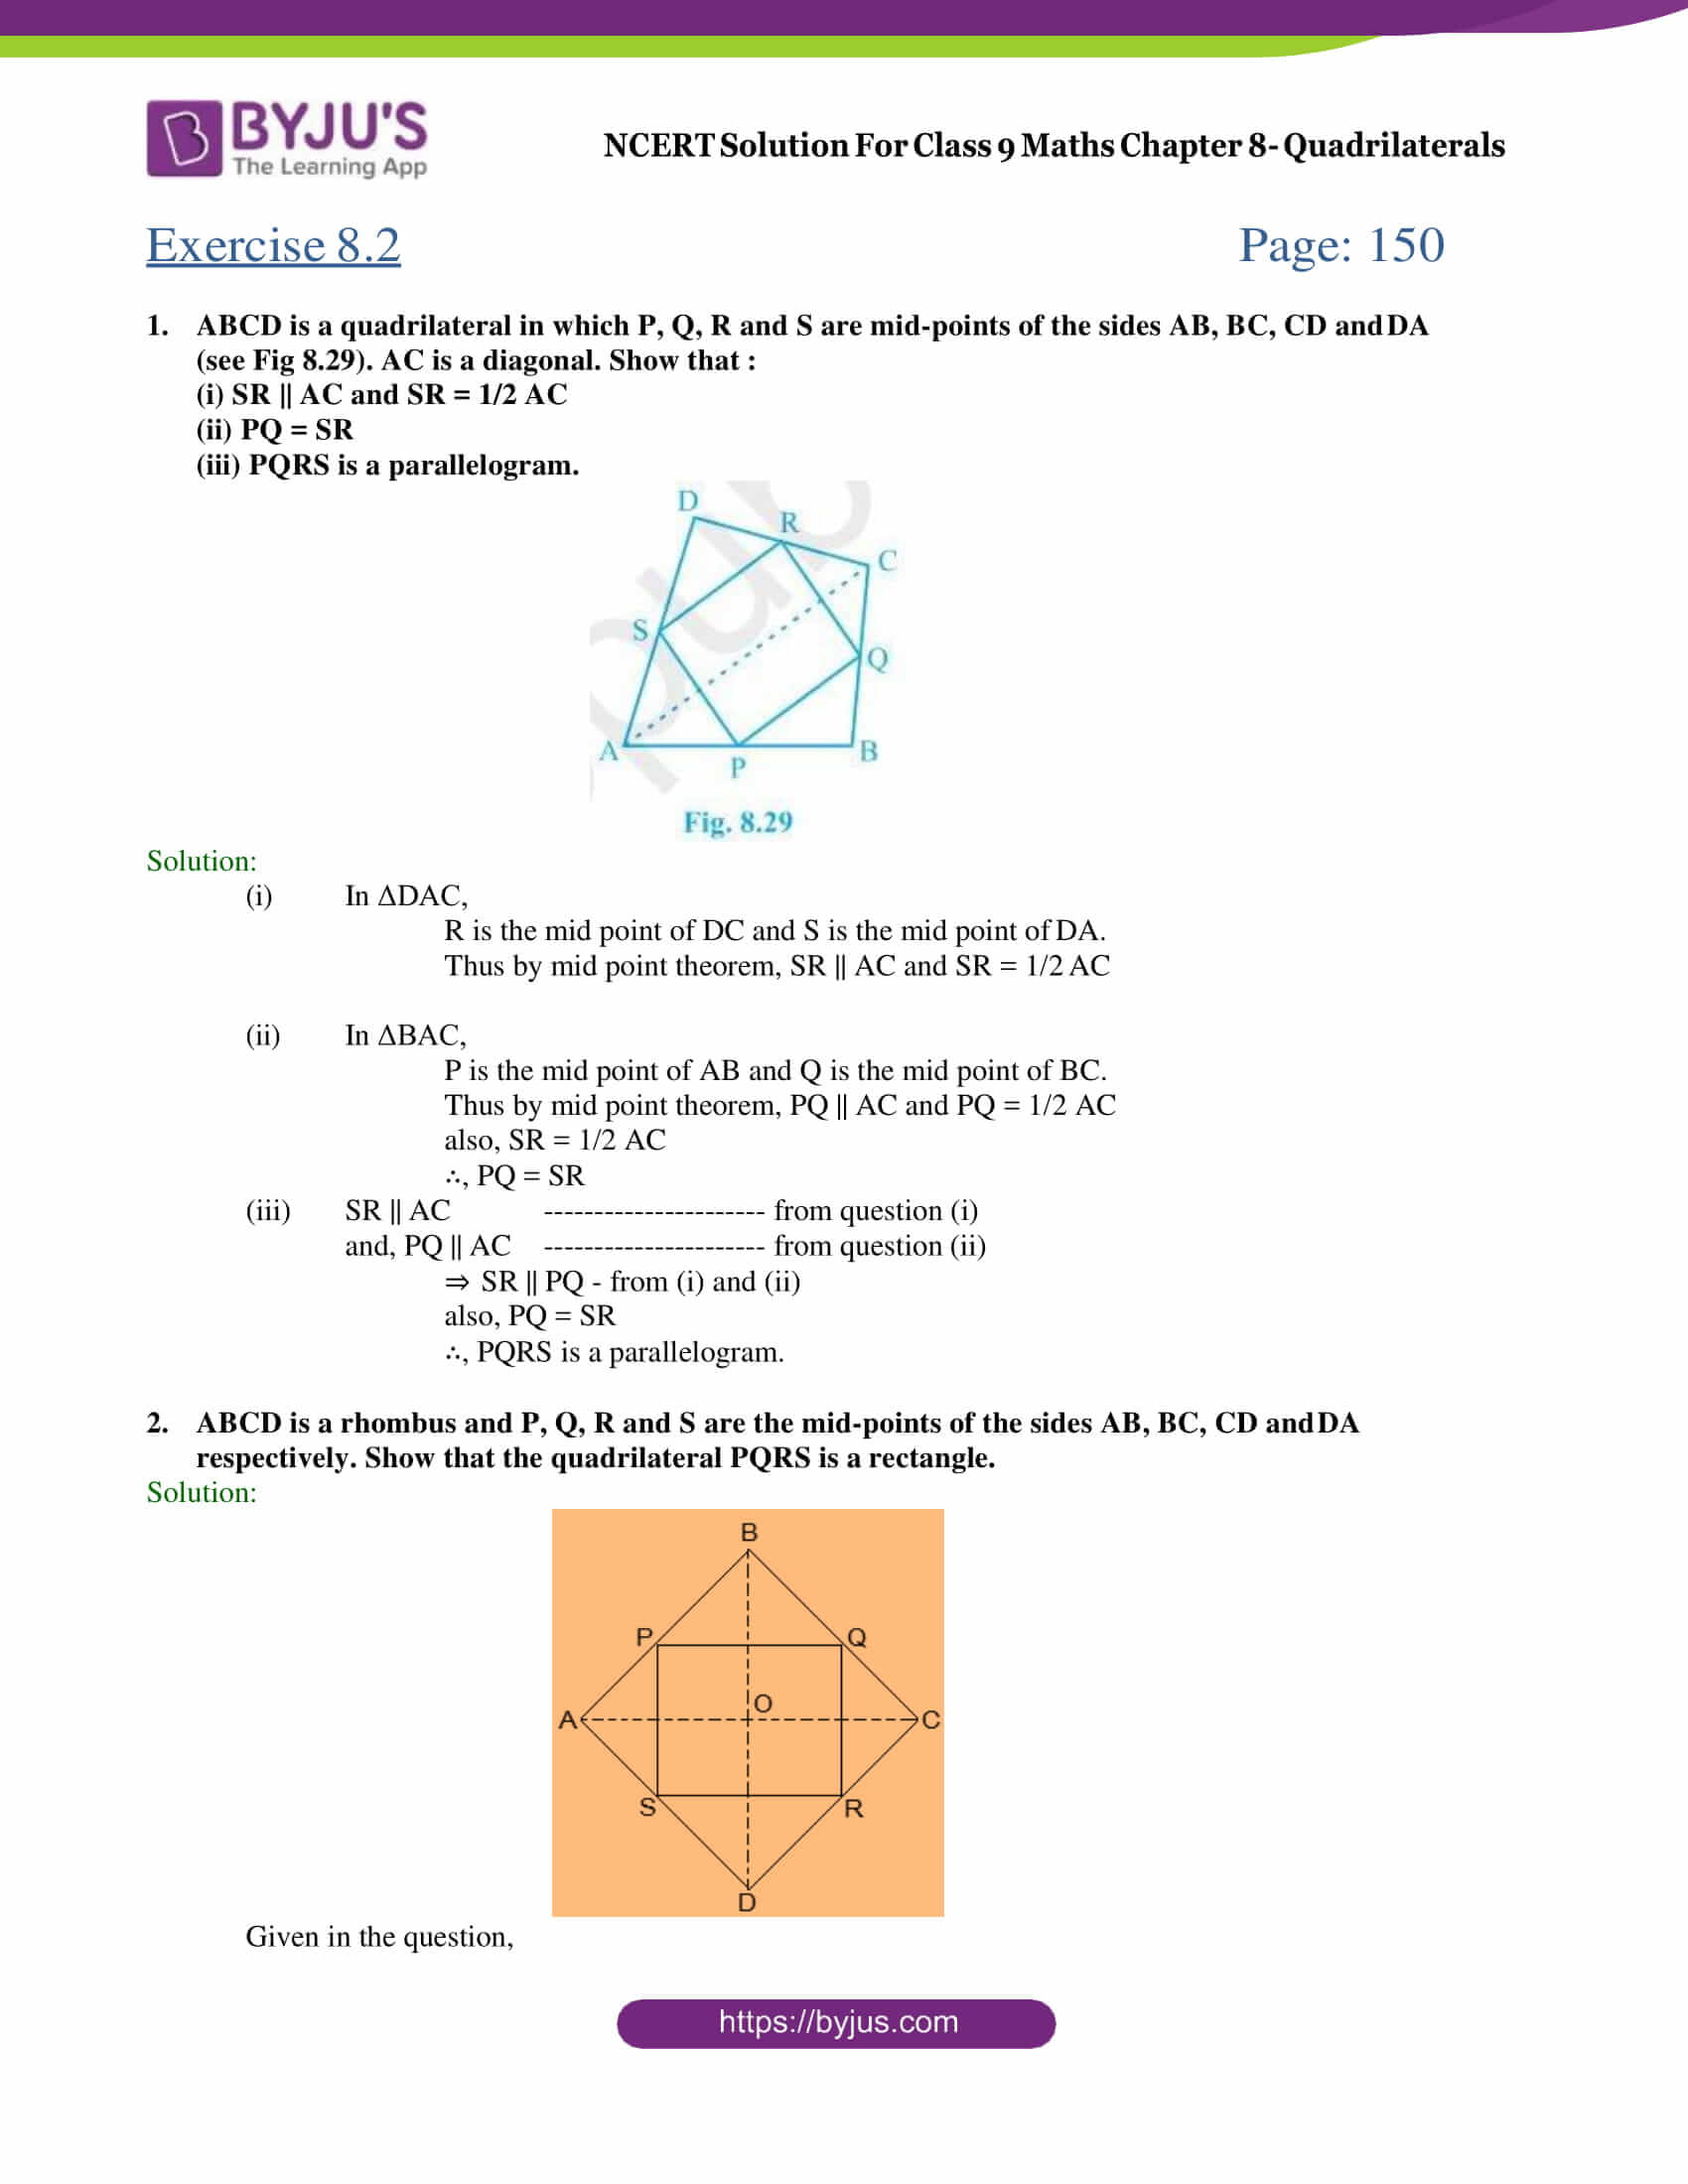 NCERT Solutions for Class 9 Maths Exercise 8 2 Chapter 8